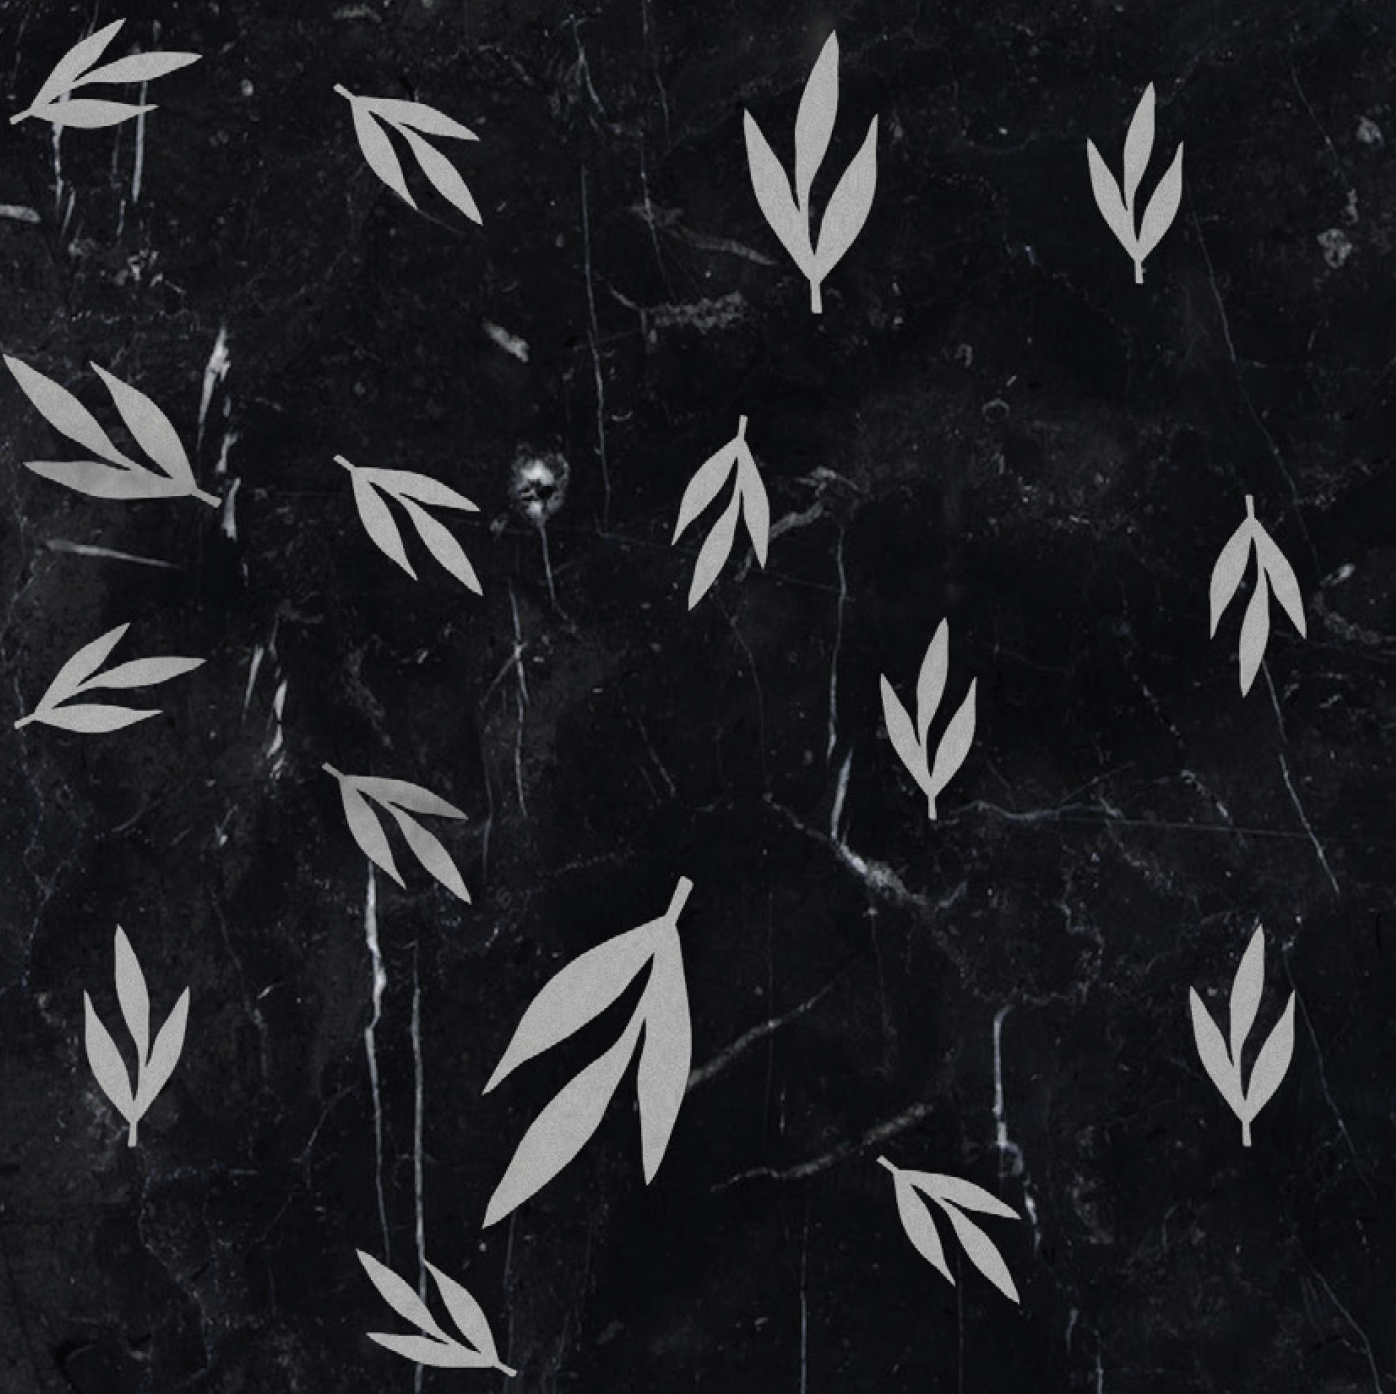 Leaves Grey - Ma.C.S. combines artisan crafted production with industrial processing powered by numerical control machines. This is demonstrated by the new marble inlay covering collection. The research aims to integrate the classical idea of marble inlay (combined in some cases with other materials such as wood and metal), with shapes, compositions and innovative, charming designs. All of that is rigorously made in Italy.  The 2017 collection is composed of tiles, large marble slabs and other architectural solutions. The design is characterised by both serial geometric sequences and eclectic surfaces, inspired by nature shapes and dreamlike dimensions.  The proposed coverings, both horizontal and vertical ones, are fully customizable in size and colors, according to client needs. | Matter of Stuff